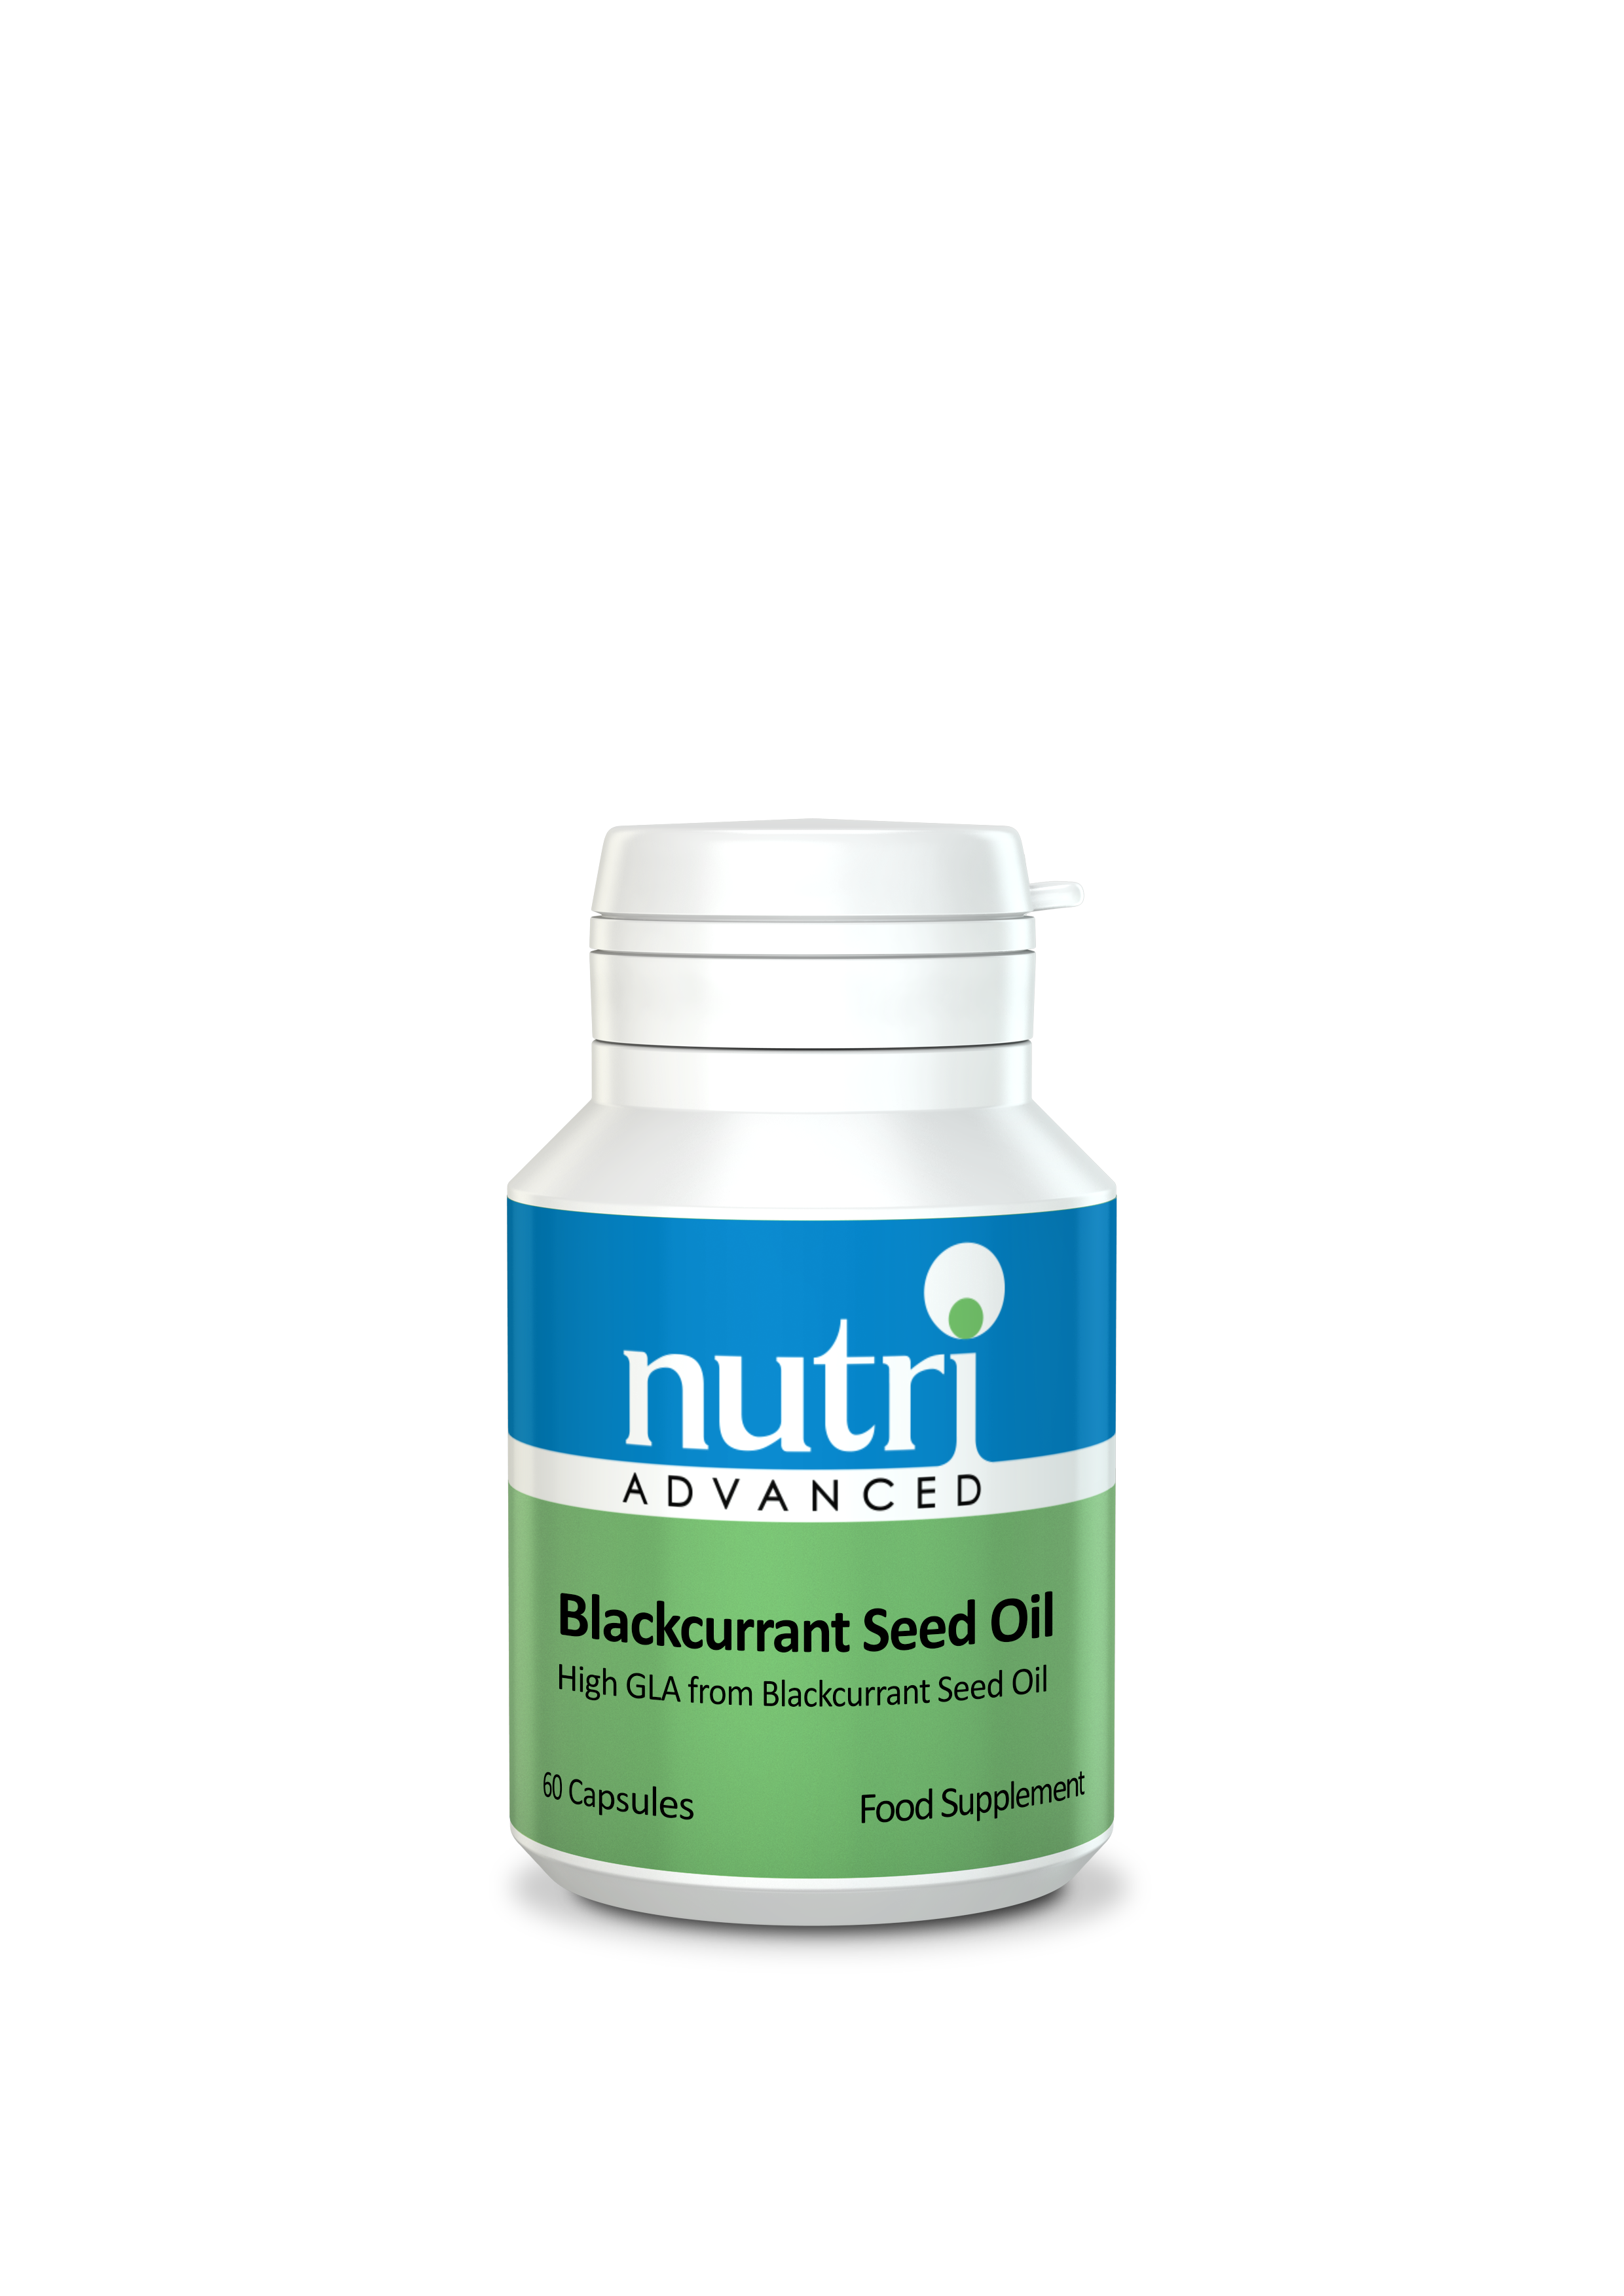 Nutri Advanced Blackcurrant Seed Oil (60 caps)